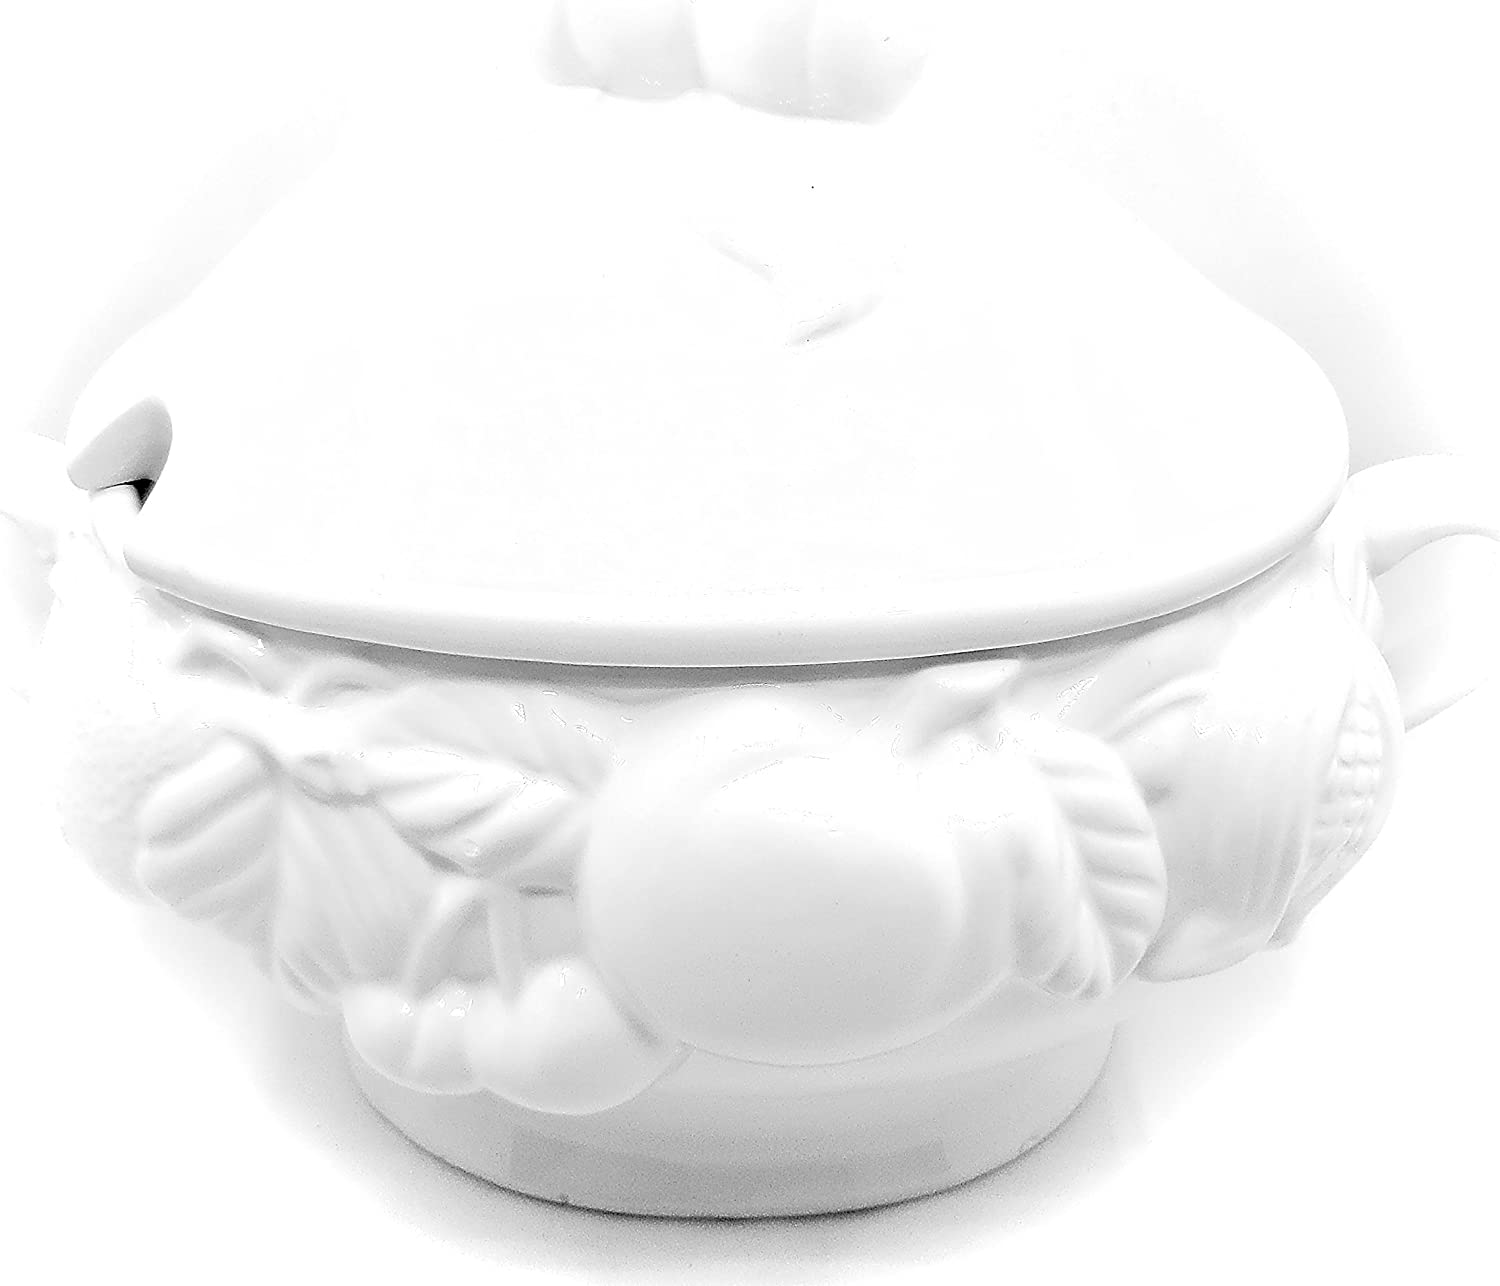 Intrada WHI7424 Baroque Soup Tureen White